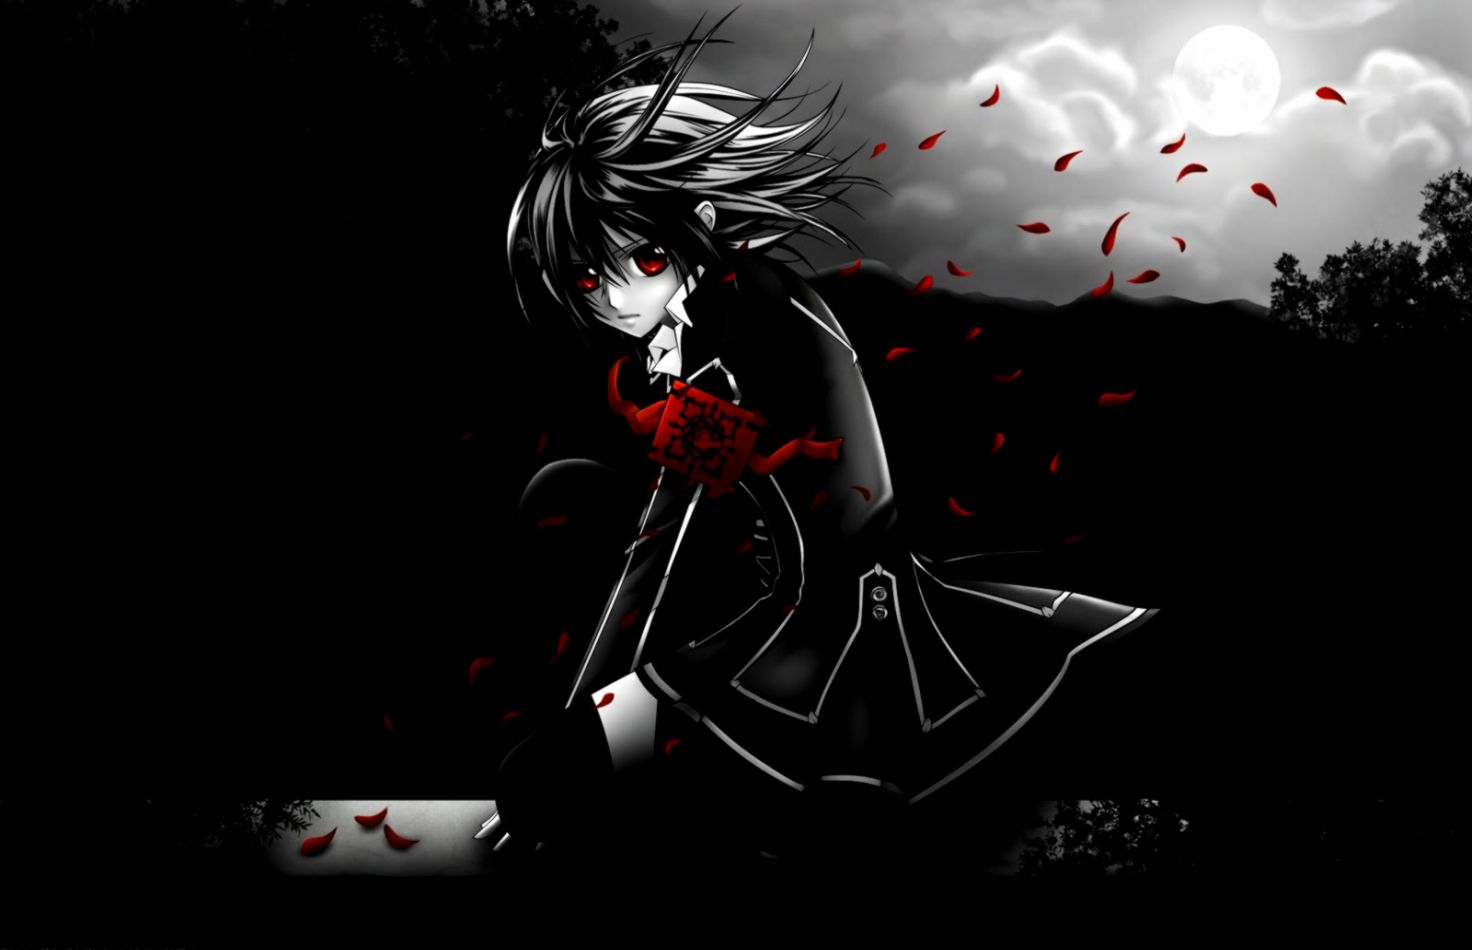 Anime emo alone night wallpaper all wallpapers desktop - Emo anime wallpaper ...